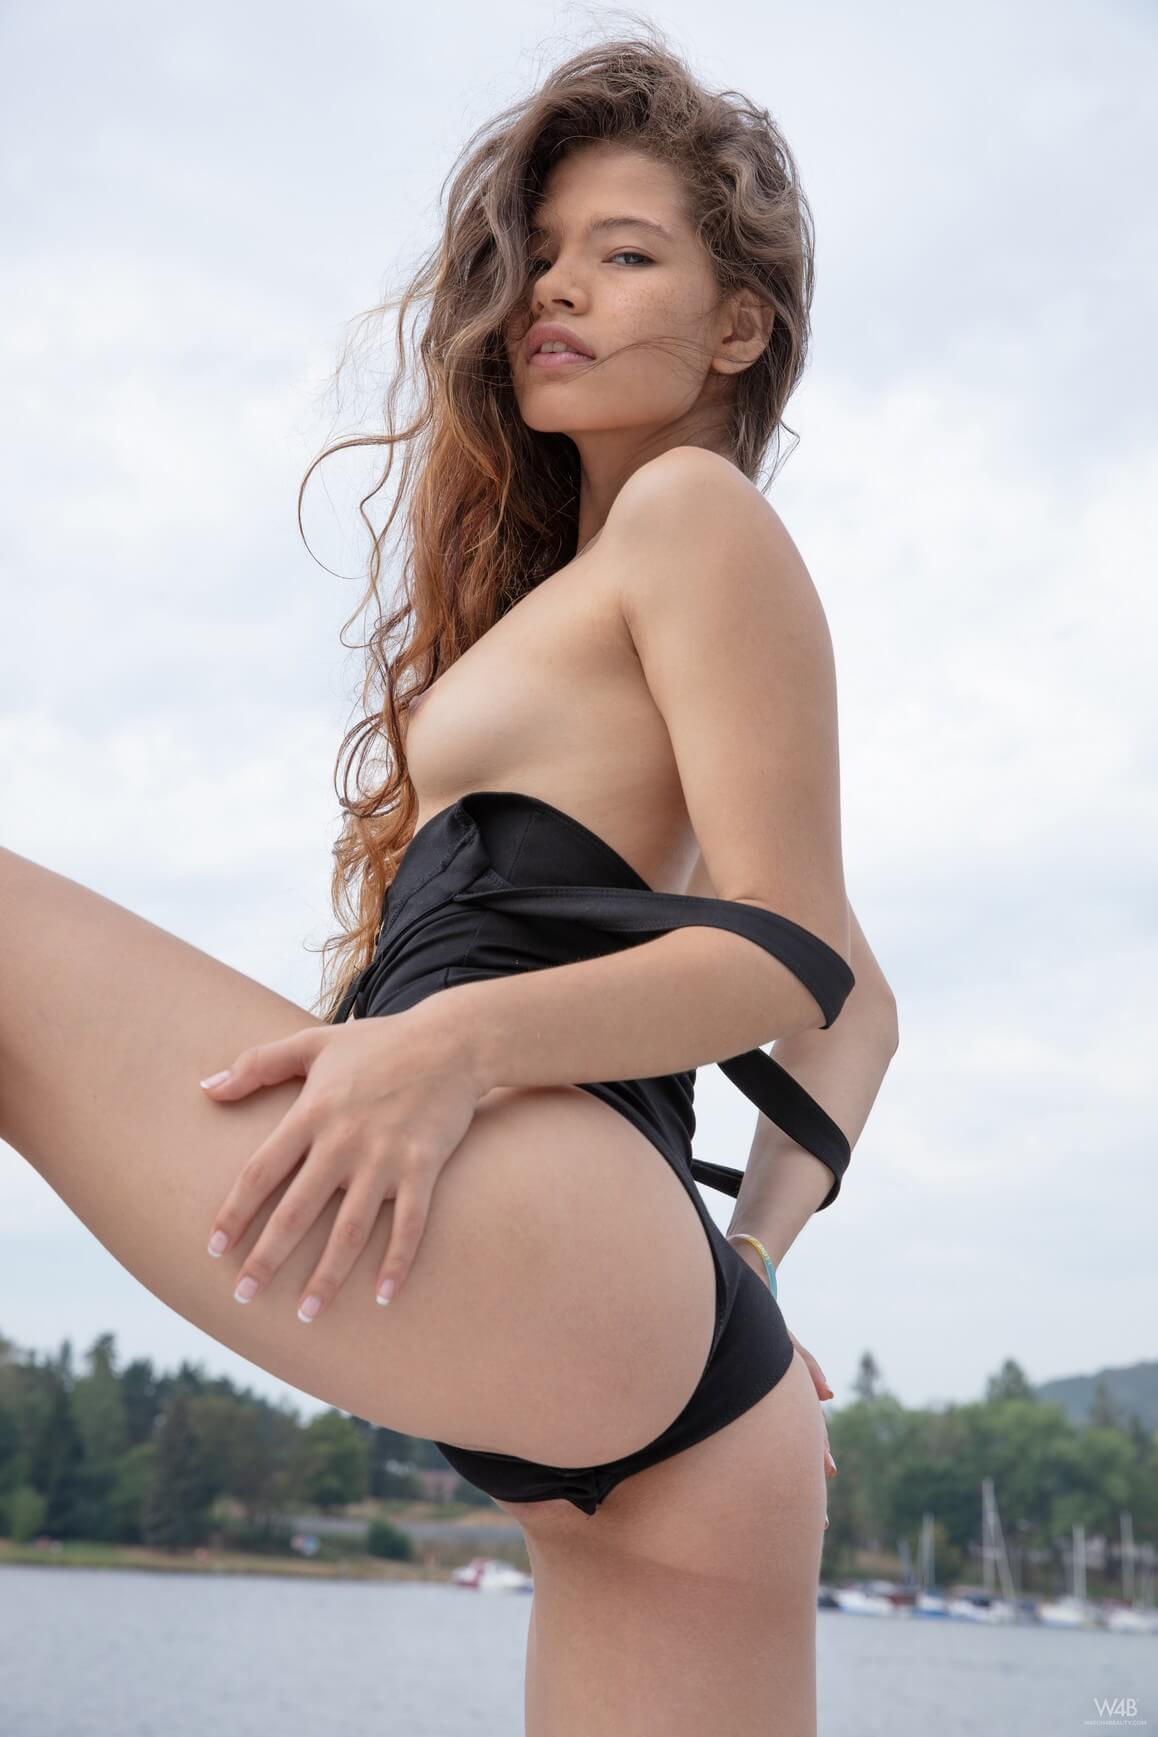 Irene Rouse - Young Pirate Watch4beauty ⋆ Pandesia World